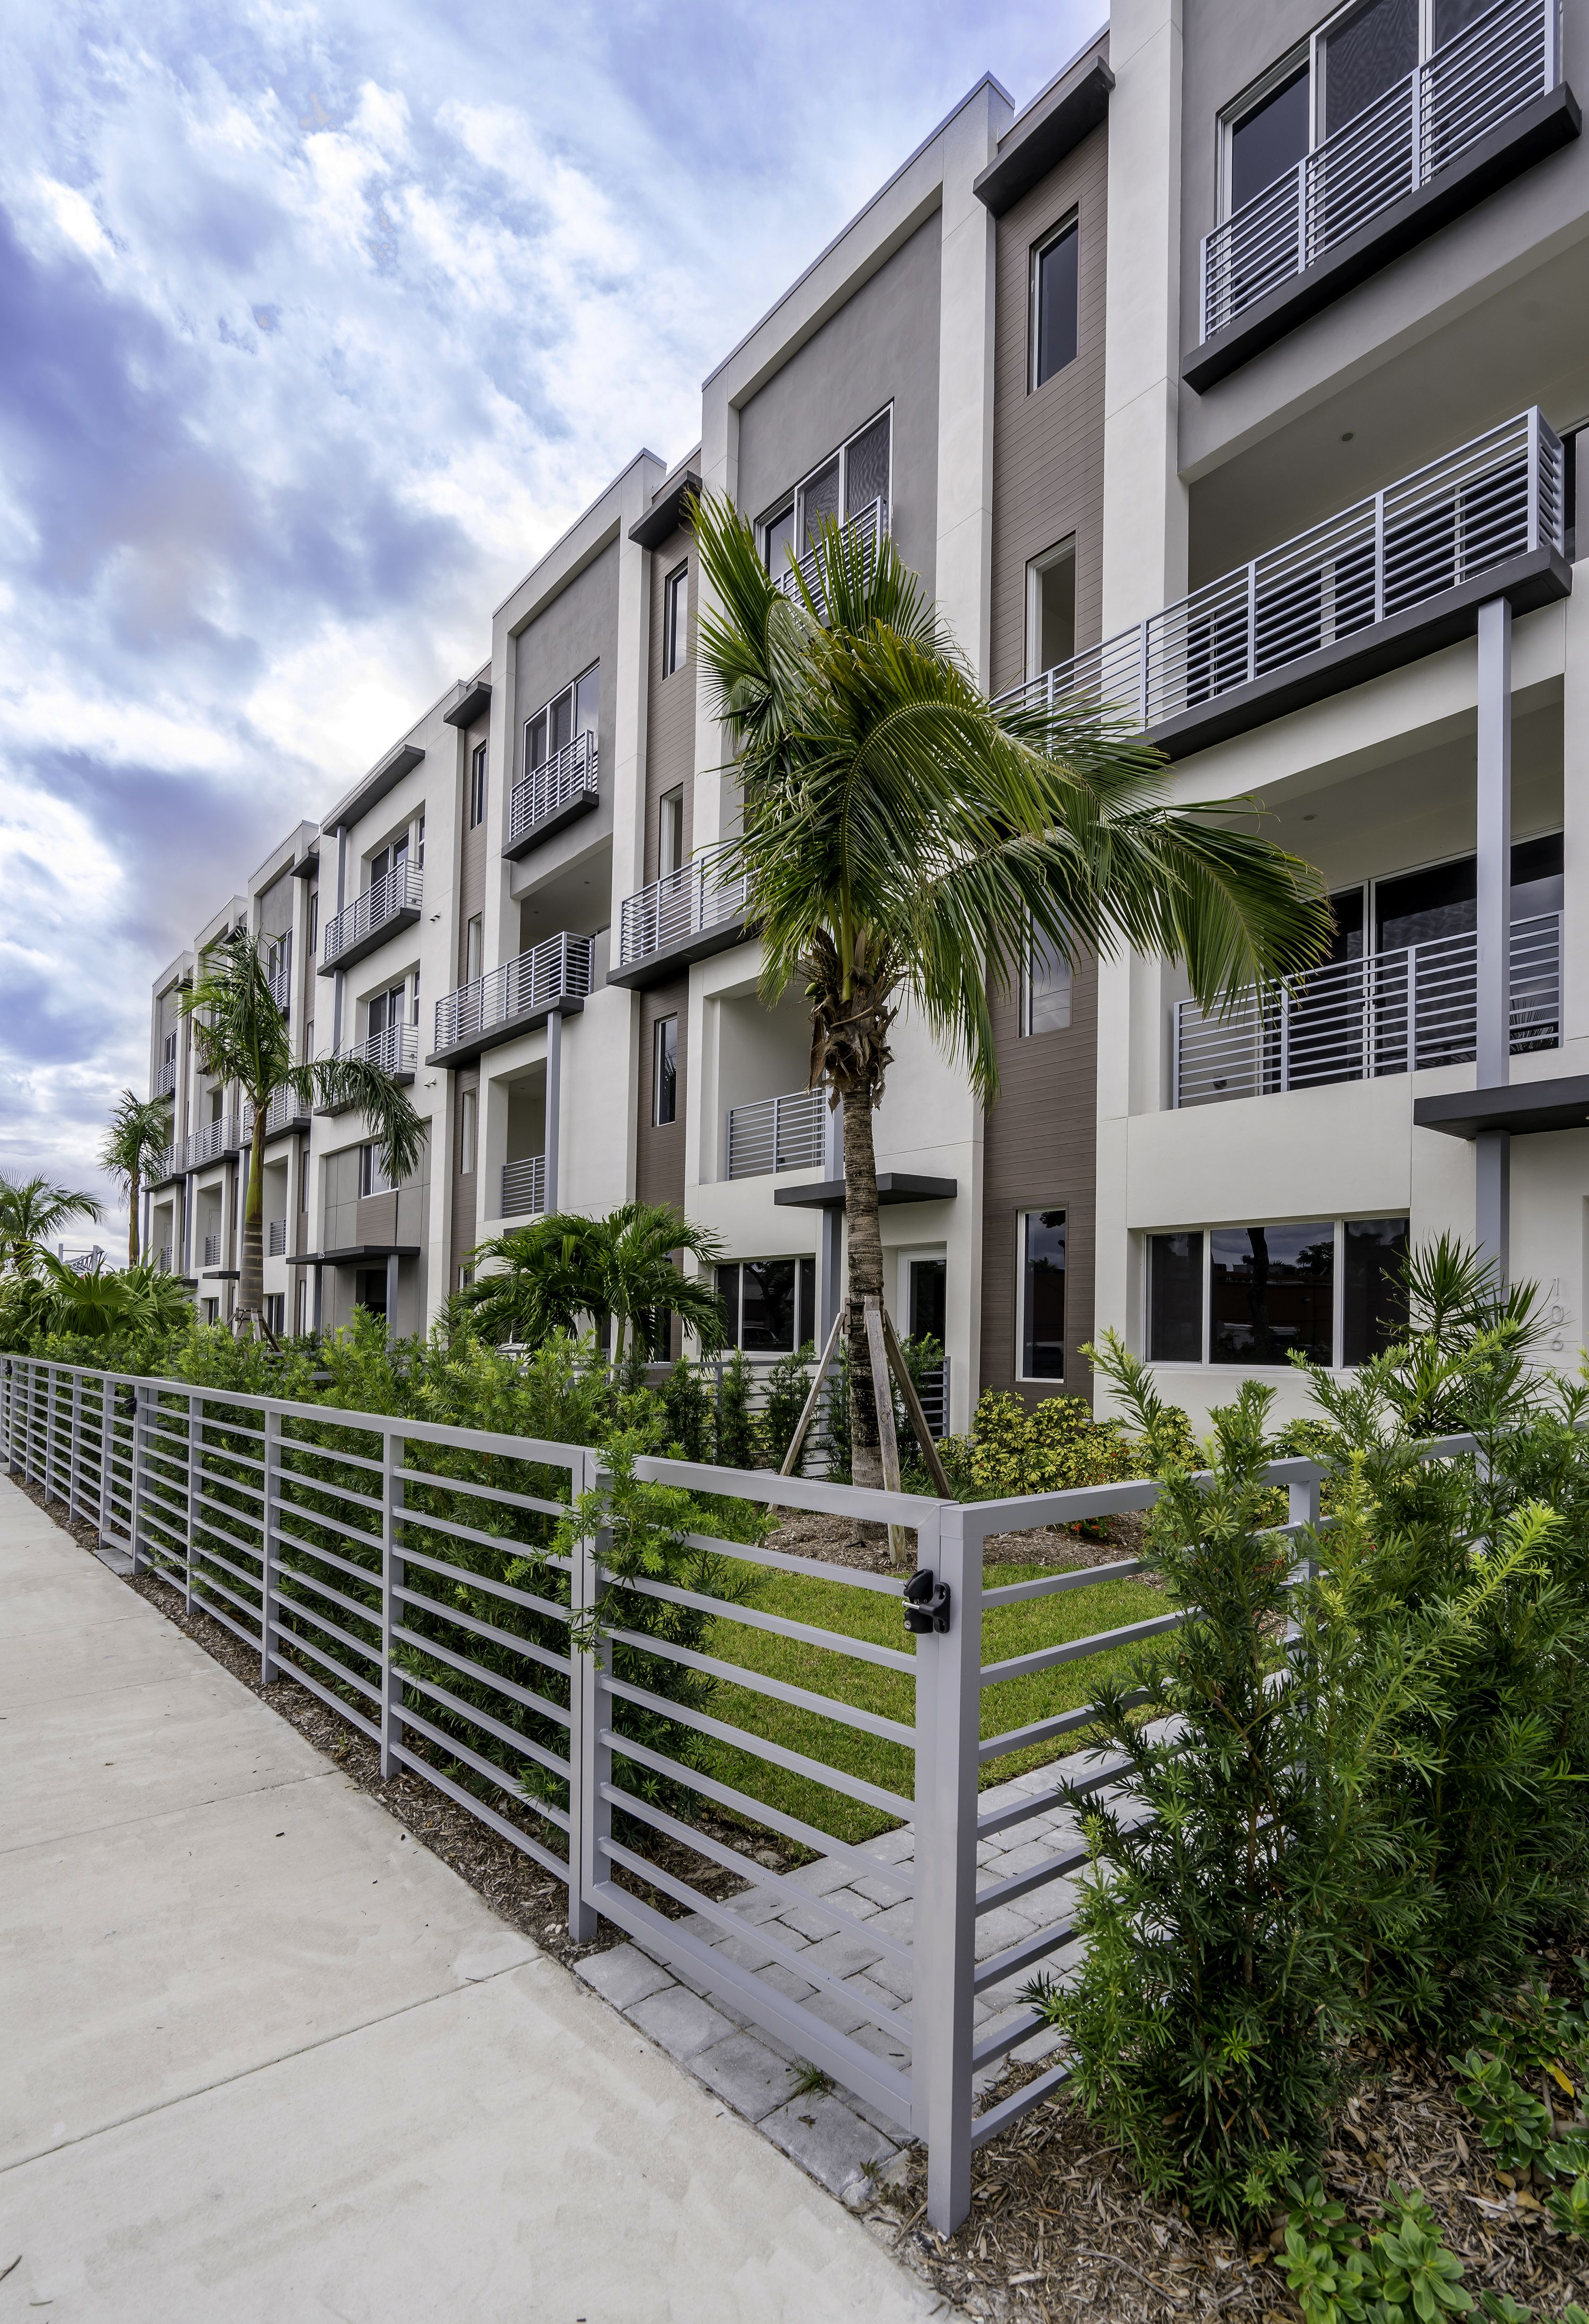 Pin By Naika Cook On South Florida Homes For Sale Florida Homes For Sale Florida Home West Palm Beach